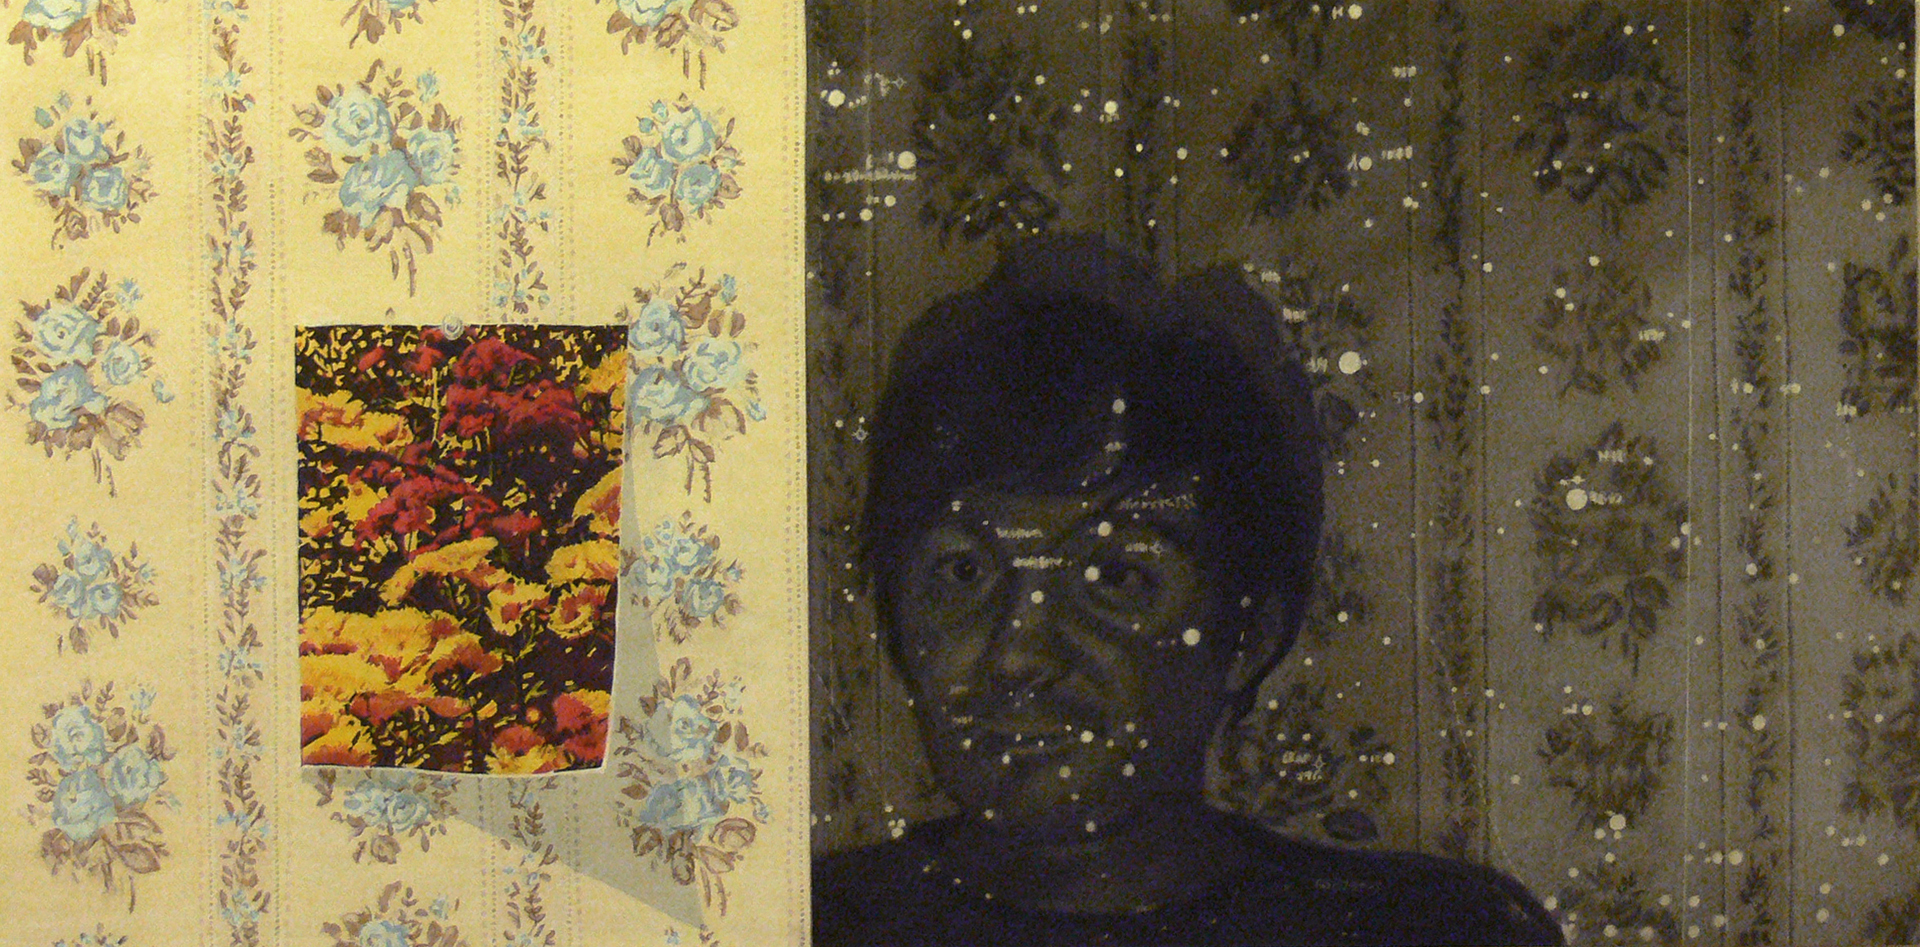 Jeneve_Parrish_Portrait of James Pullen and Everything and Nothing_20X40inches_graphite, gouache, watercolor and colored pencil on prepared paper.jpg